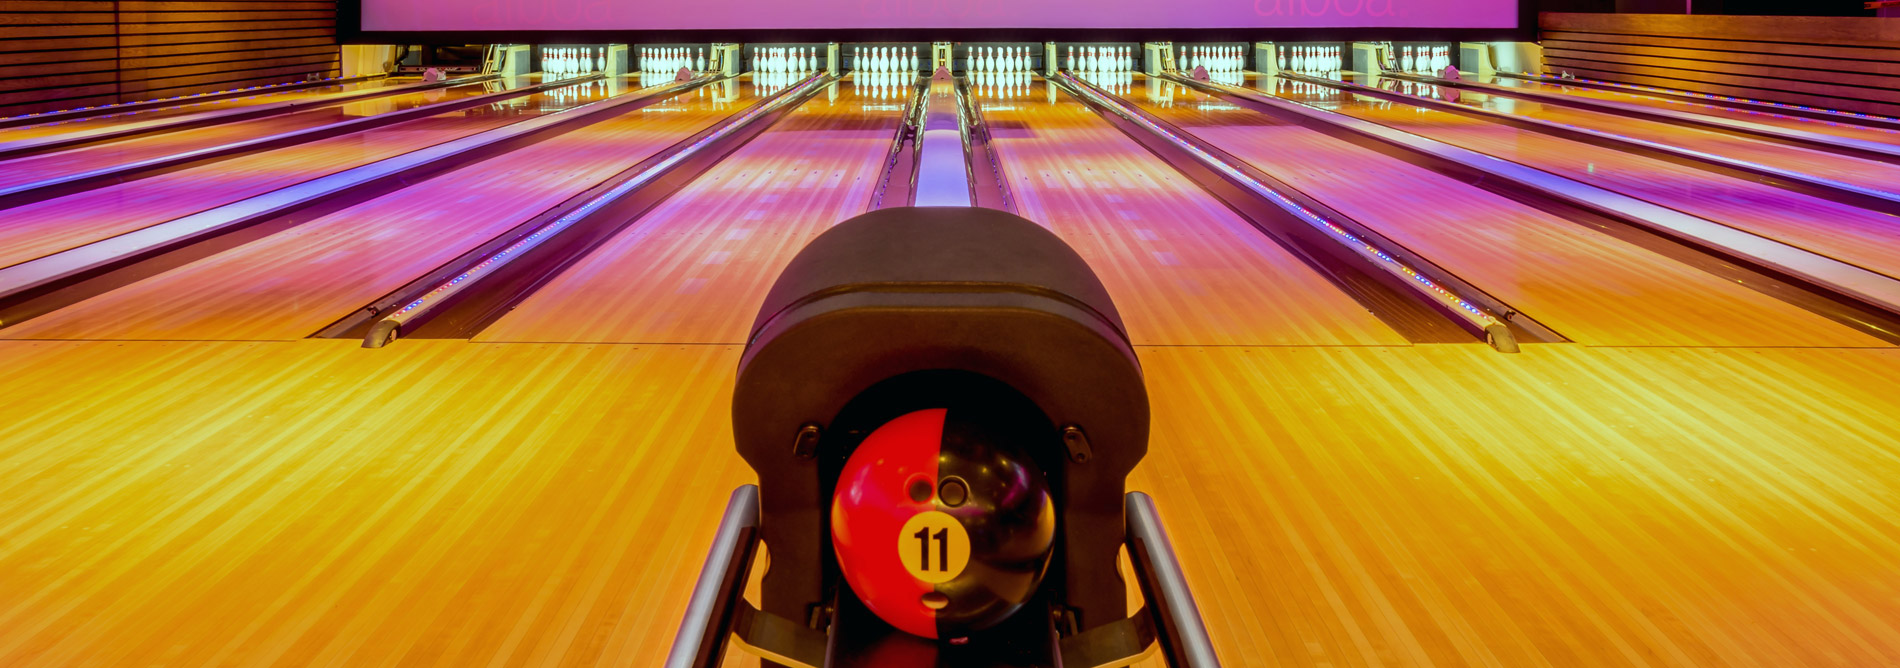 Bowling-QubicaAMF-lanes-product-banner.jpg